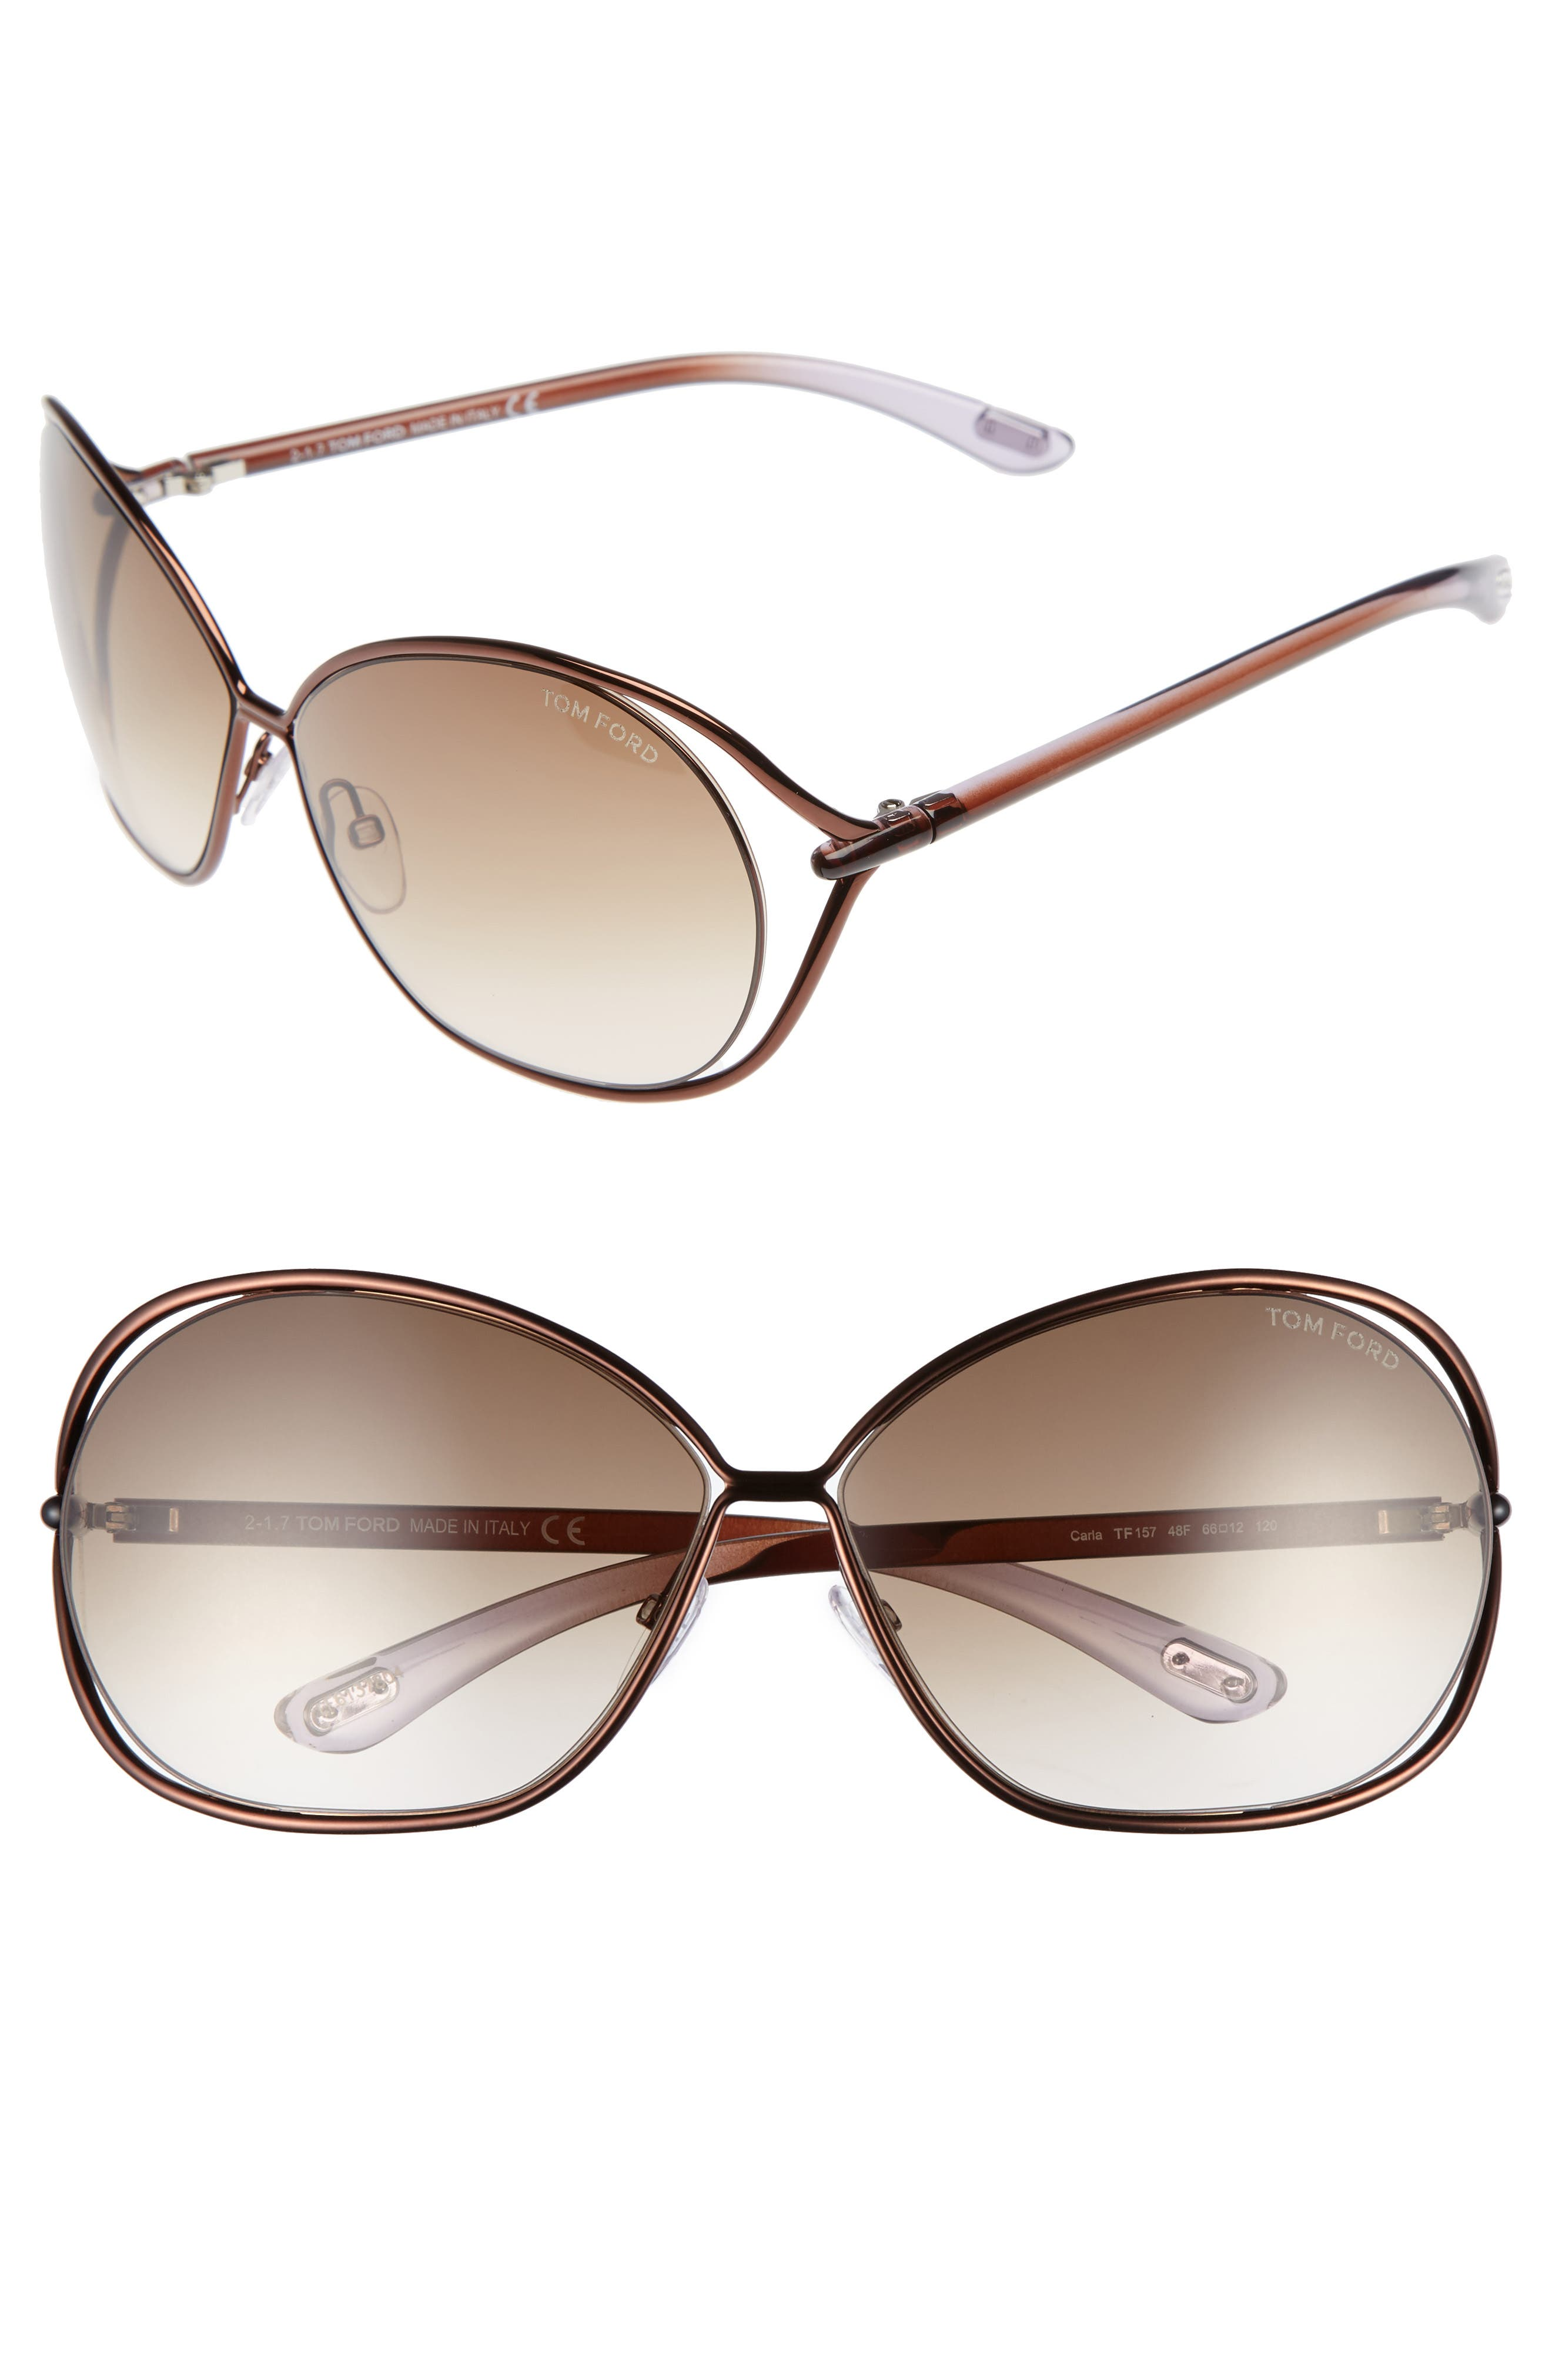 Tom Ford Carla 6m Oversized Round Metal Sunglasses - Brown/ Brown